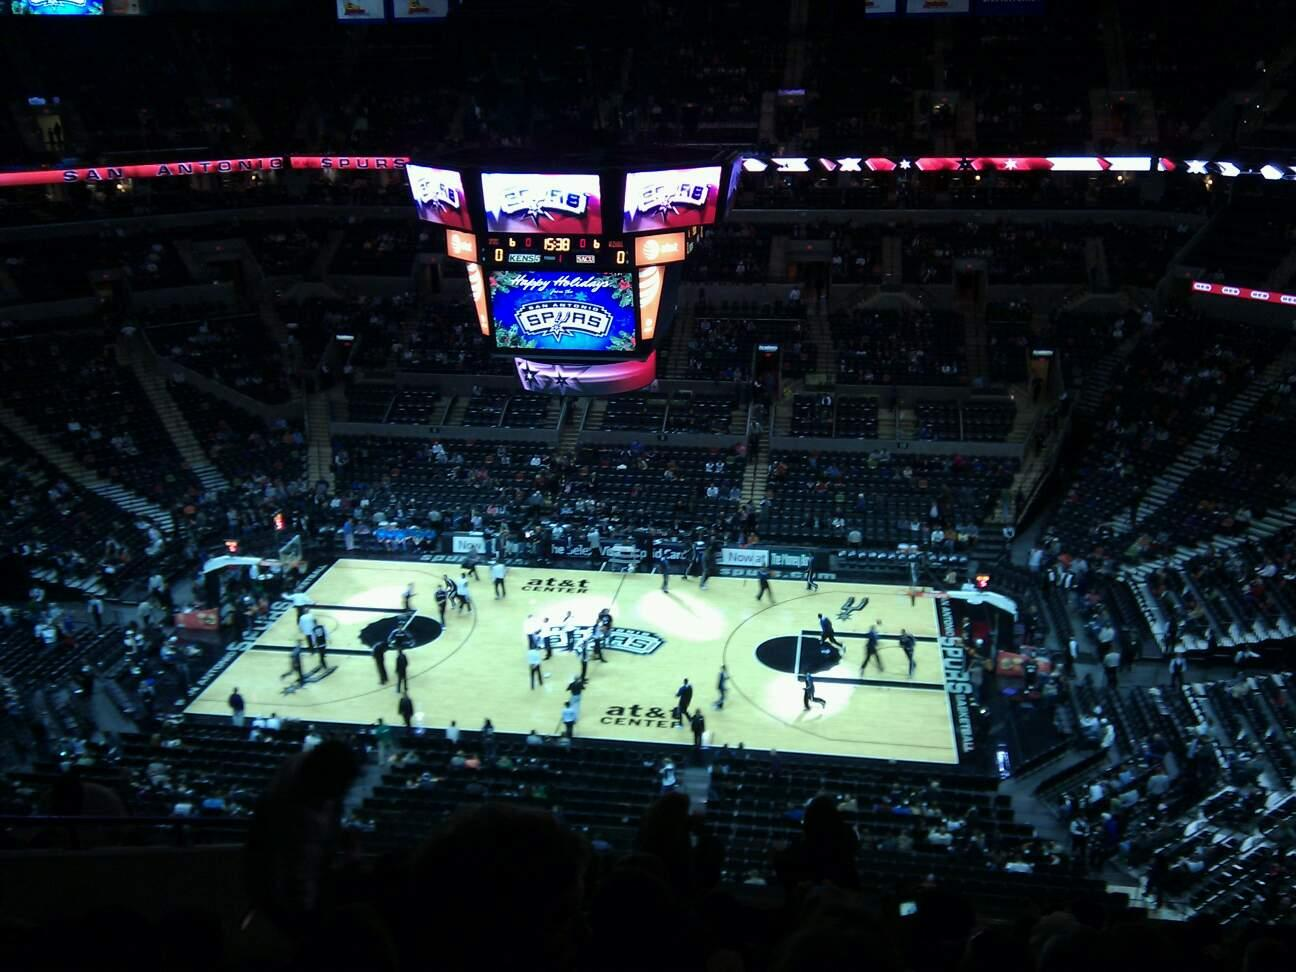 AT&T Center Section 223 Row 11 Seat 13